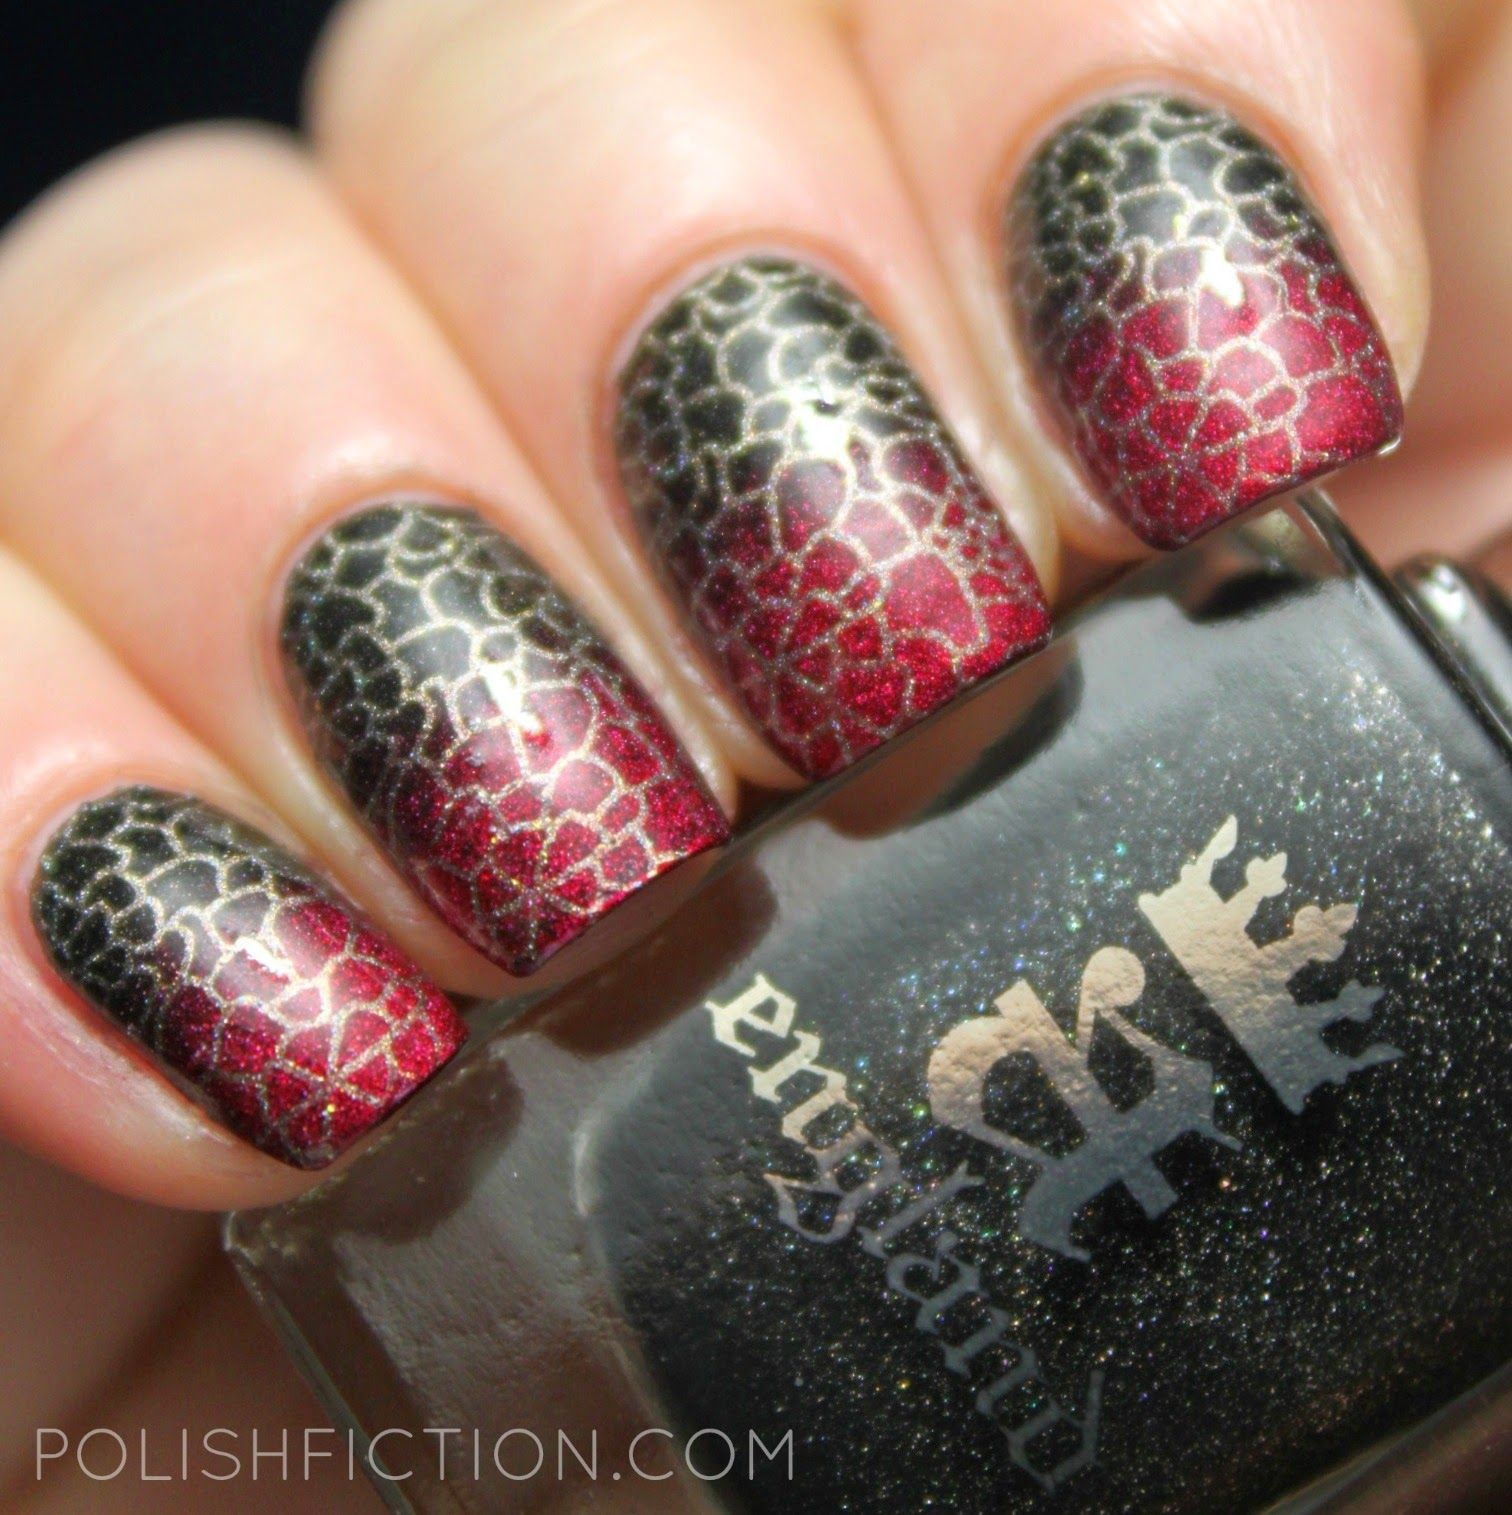 A England gradient nail art with some stamping